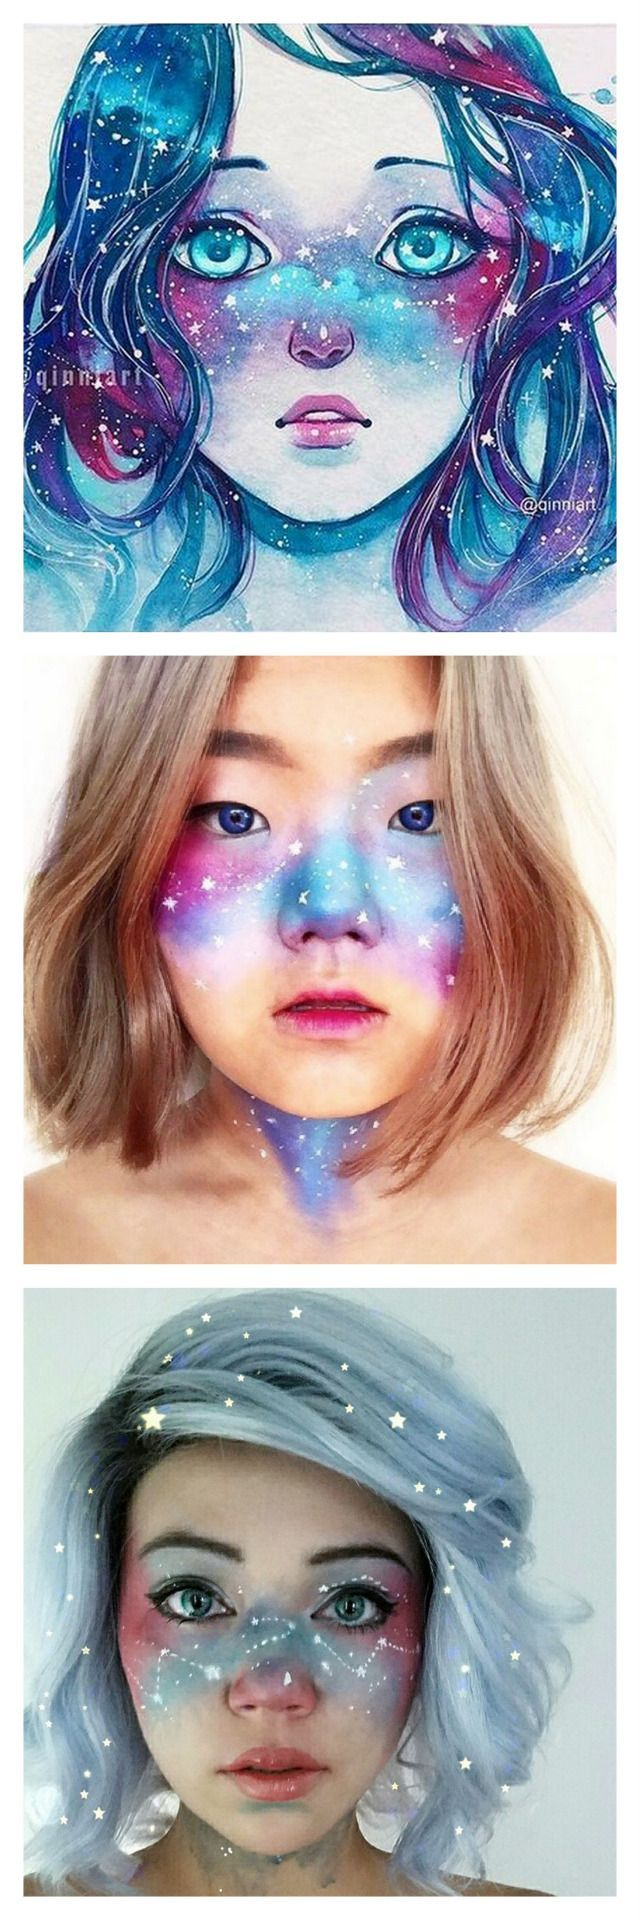 DIY Inspiration: Galaxy Freckles Trend Started By Artist